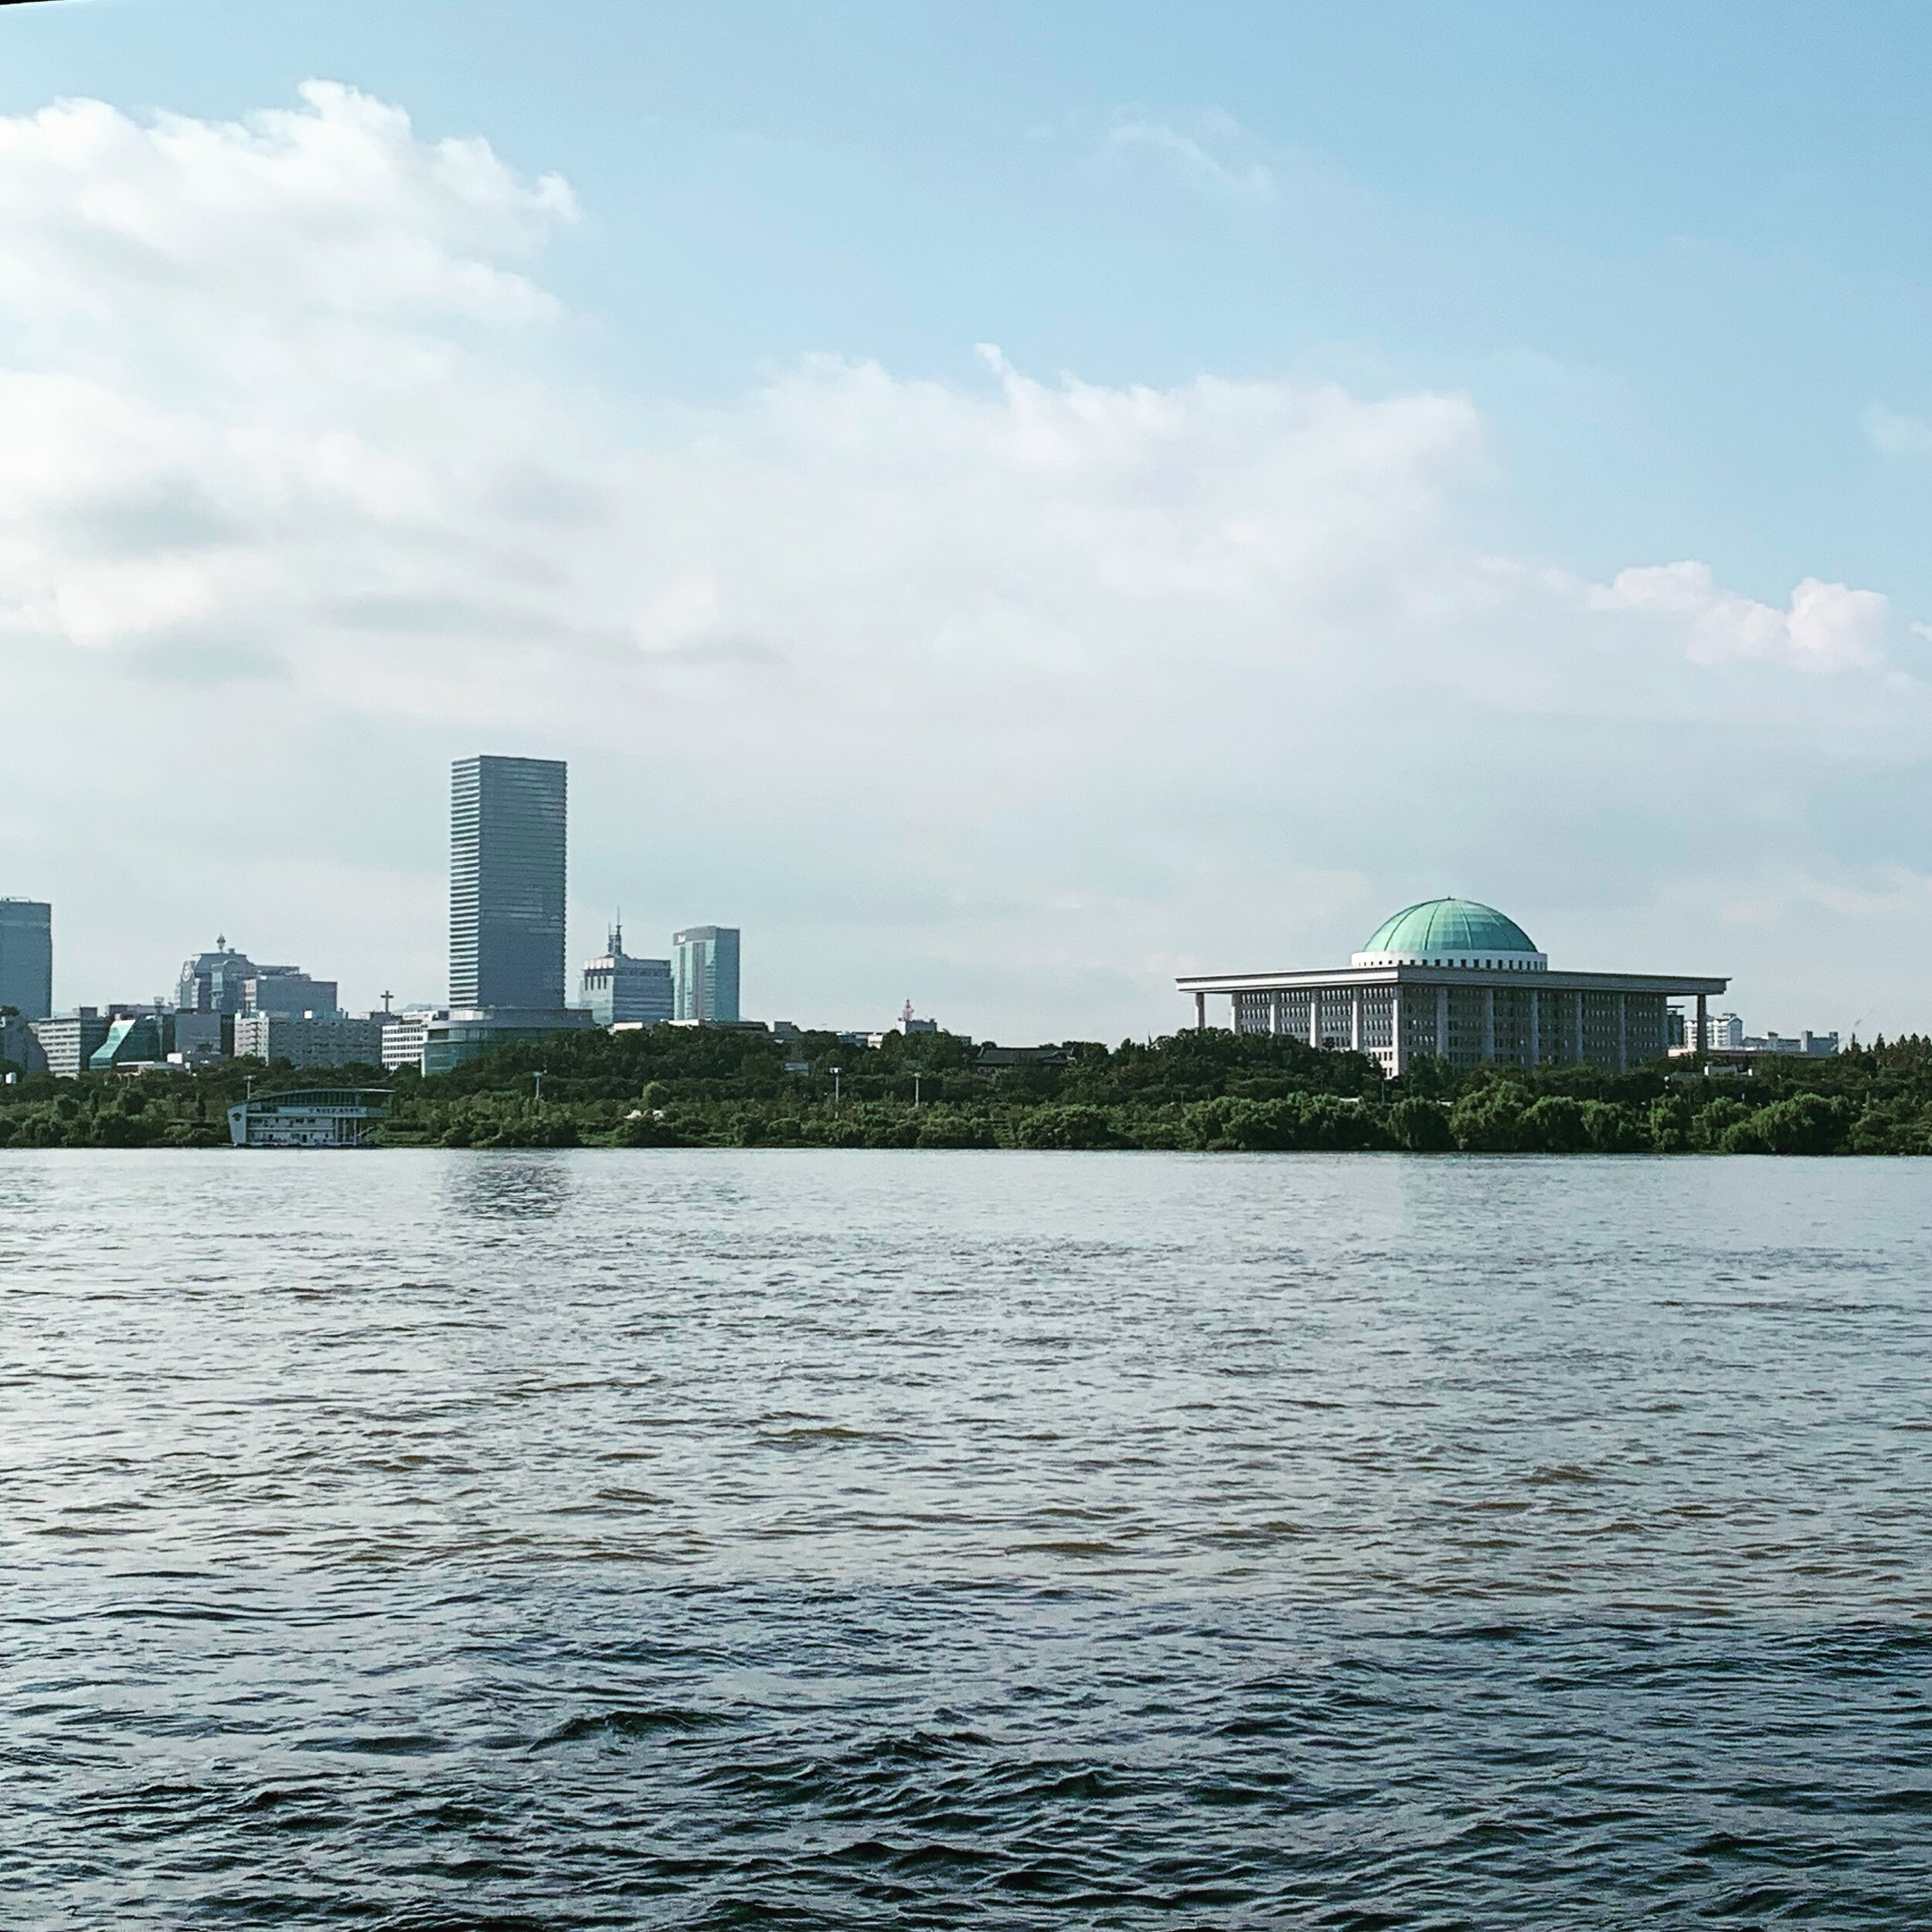 Han River looking toward the South Korean National Assembly (D. Draudt, August 2019)